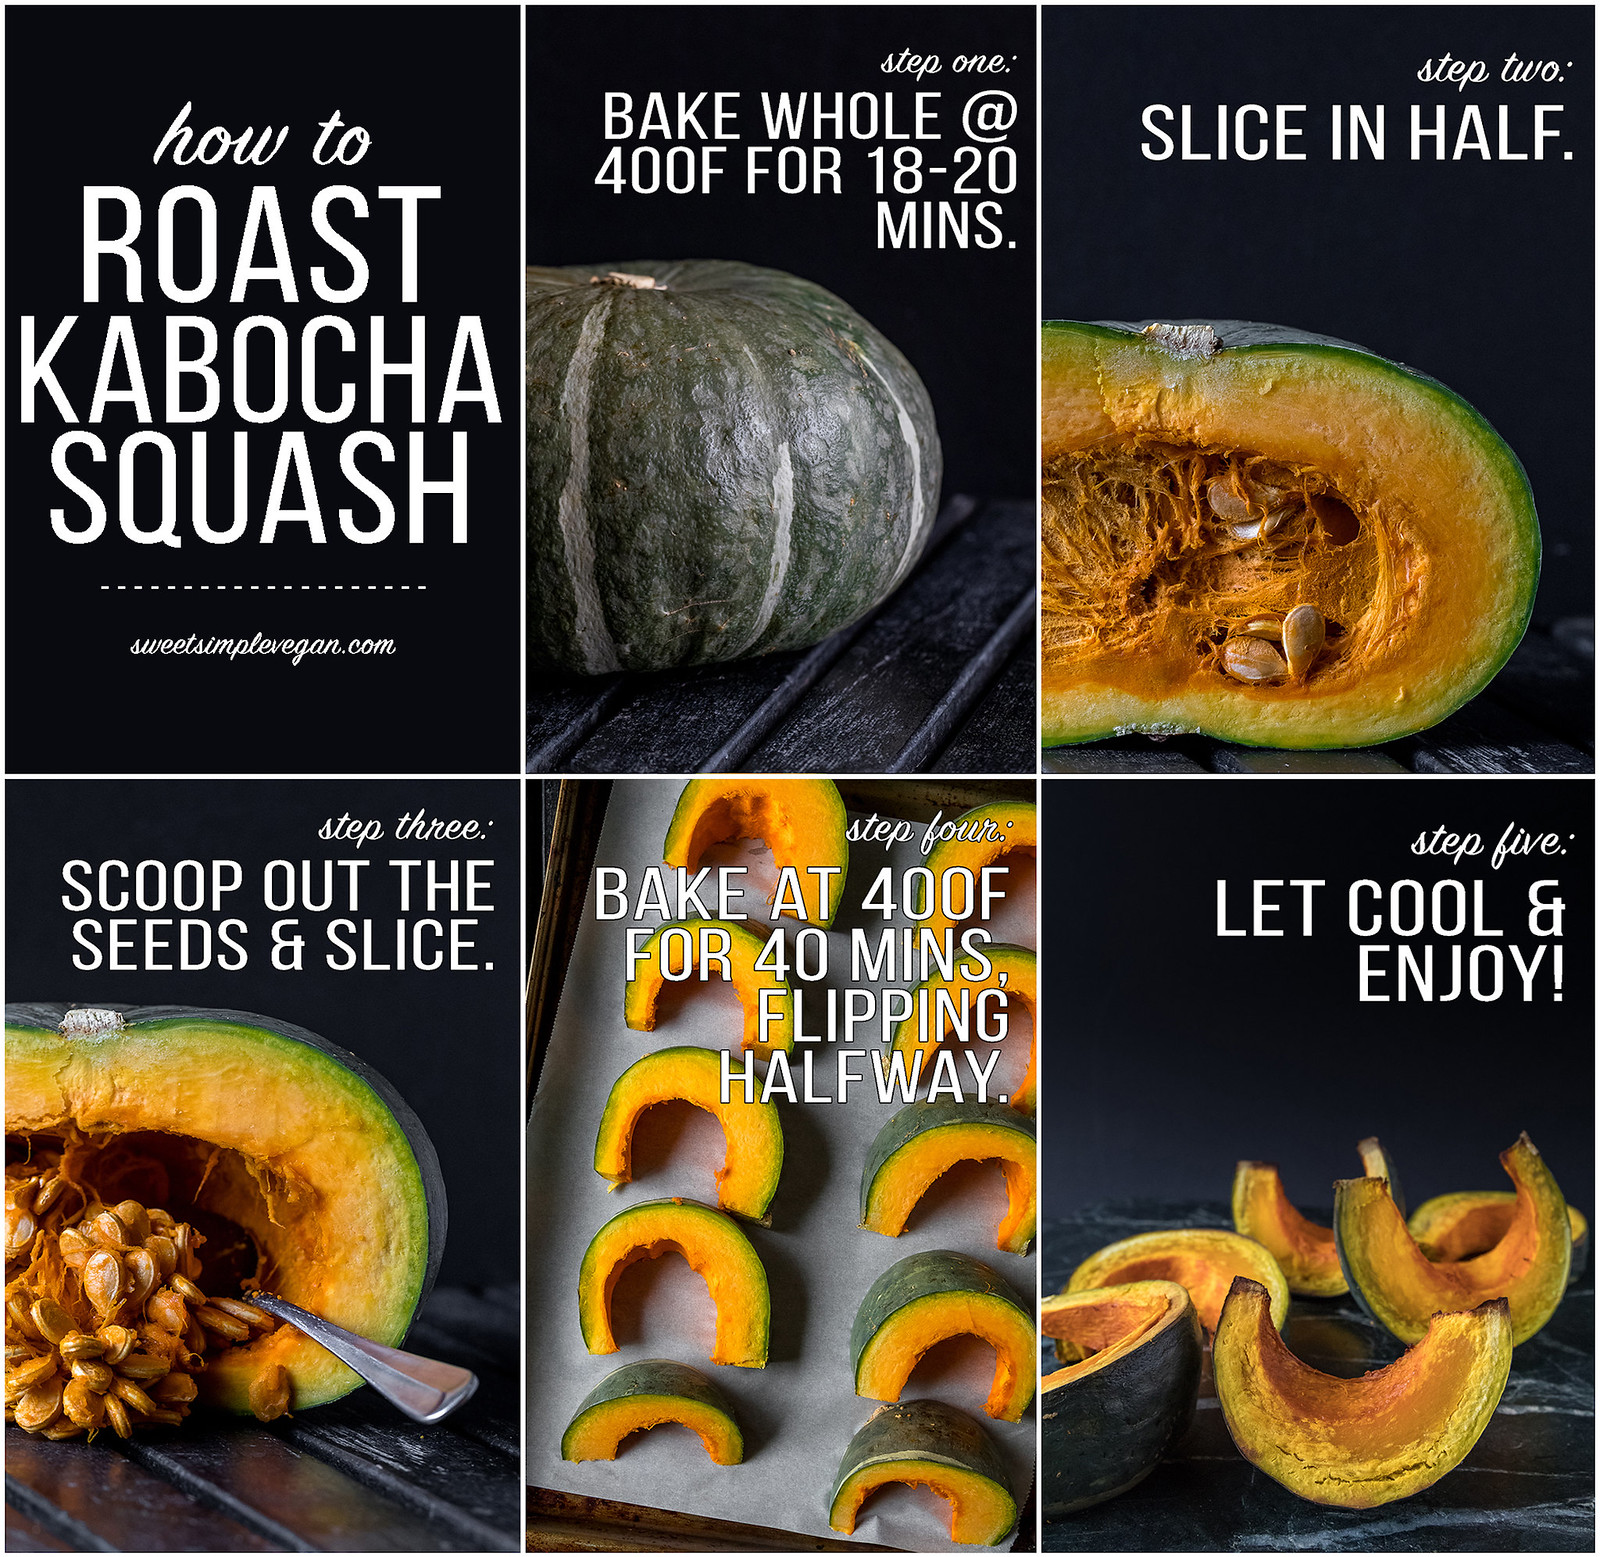 How To Roast Kabocha Squash sweetsimplevegan.com